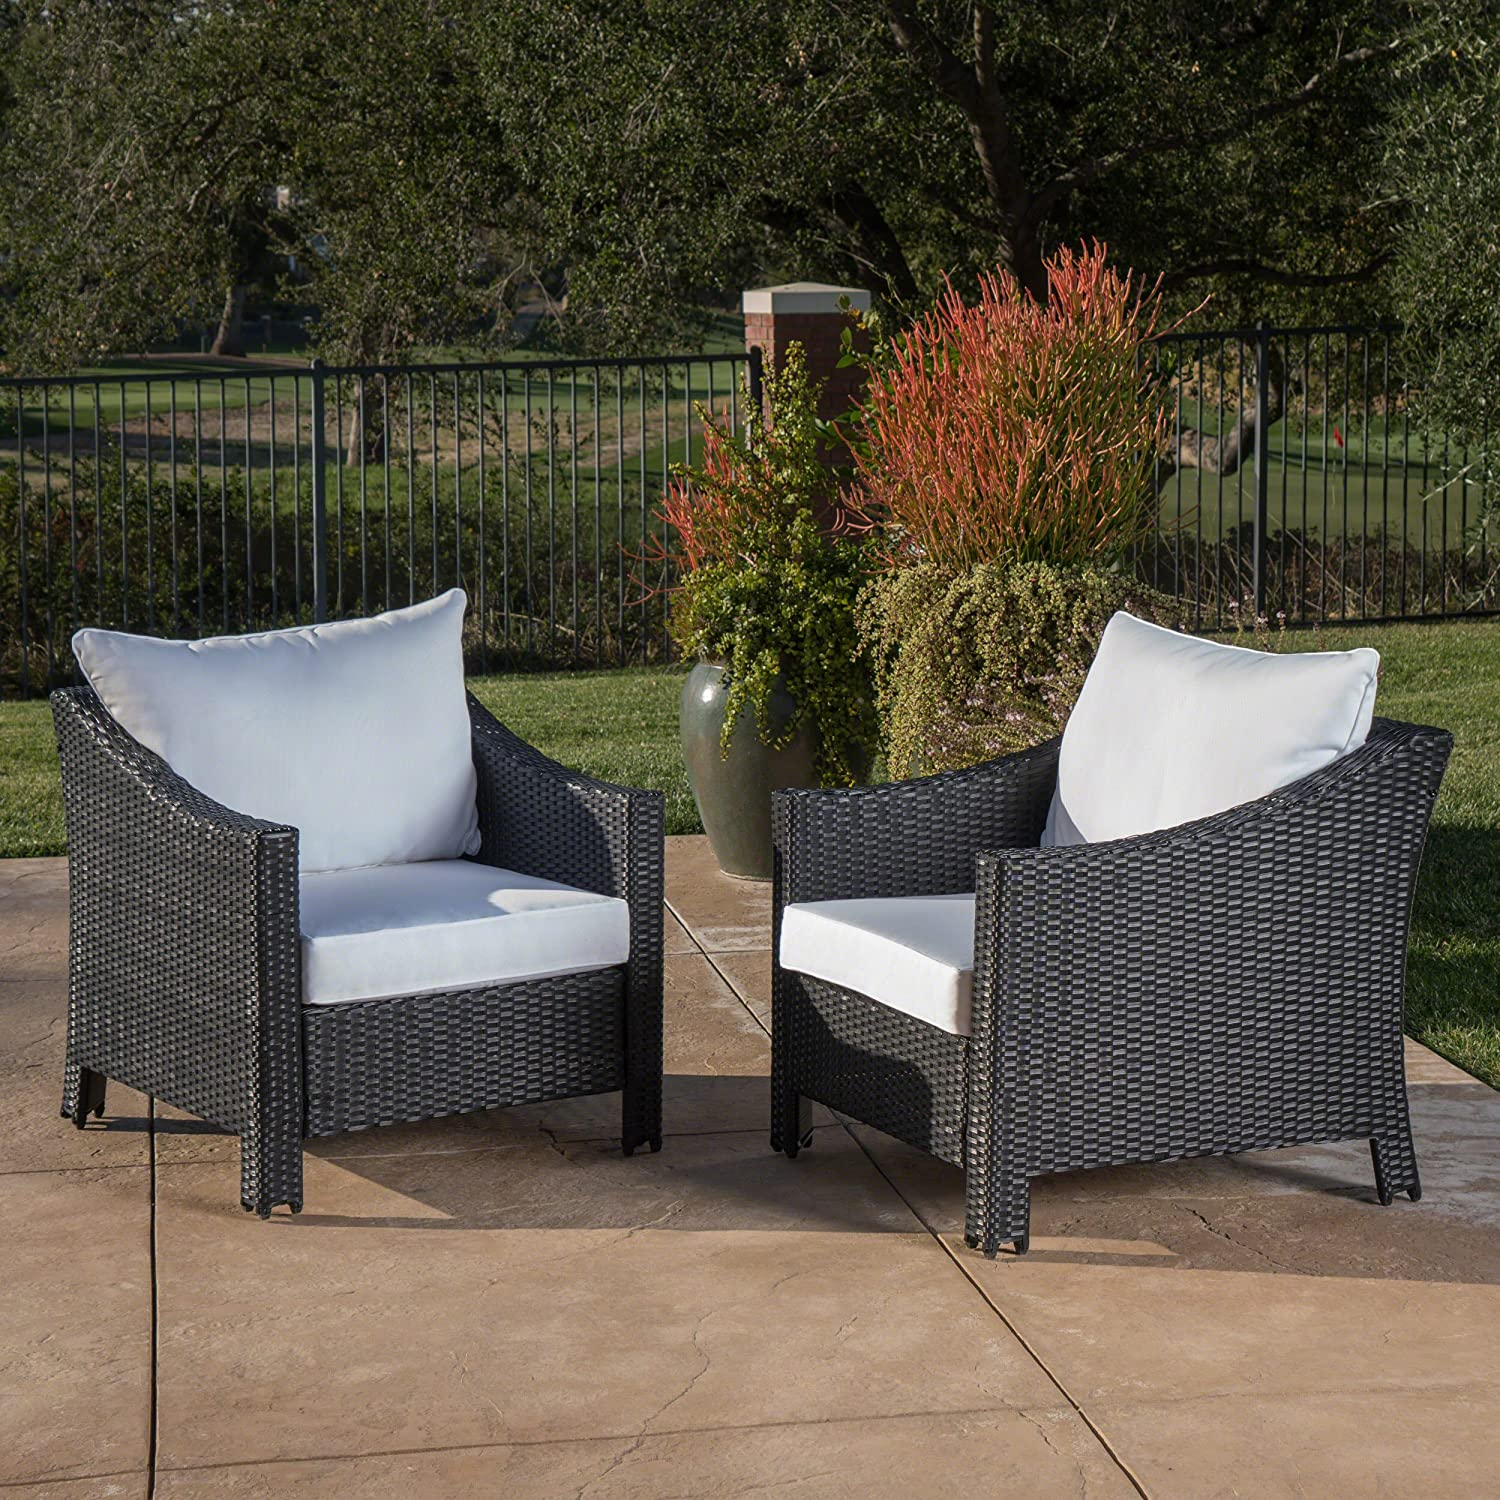 Great Deal Furniture Stonewell Outdoor Black Wicker Club Chairs with White Water Resistant Cushions Set of 2